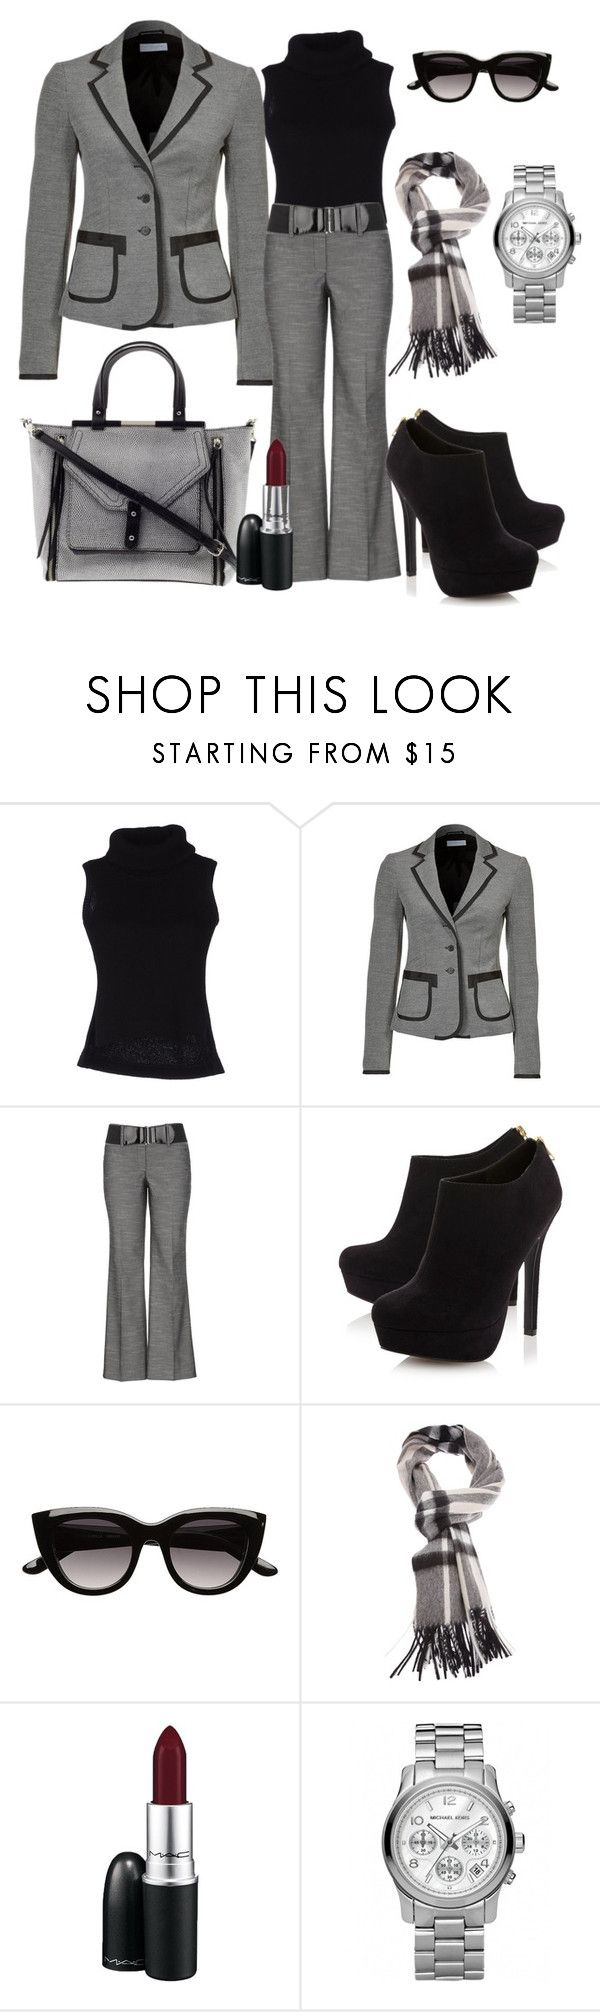 """""""Dia de reunião!"""" by cristinacordeiro ❤ liked on Polyvore featuring Y-3, Strenesse Blue, Rebecca Minkoff, Head Over Heels by Dune, Witchery, Burberry, MAC Cosmetics and Michael Kors"""